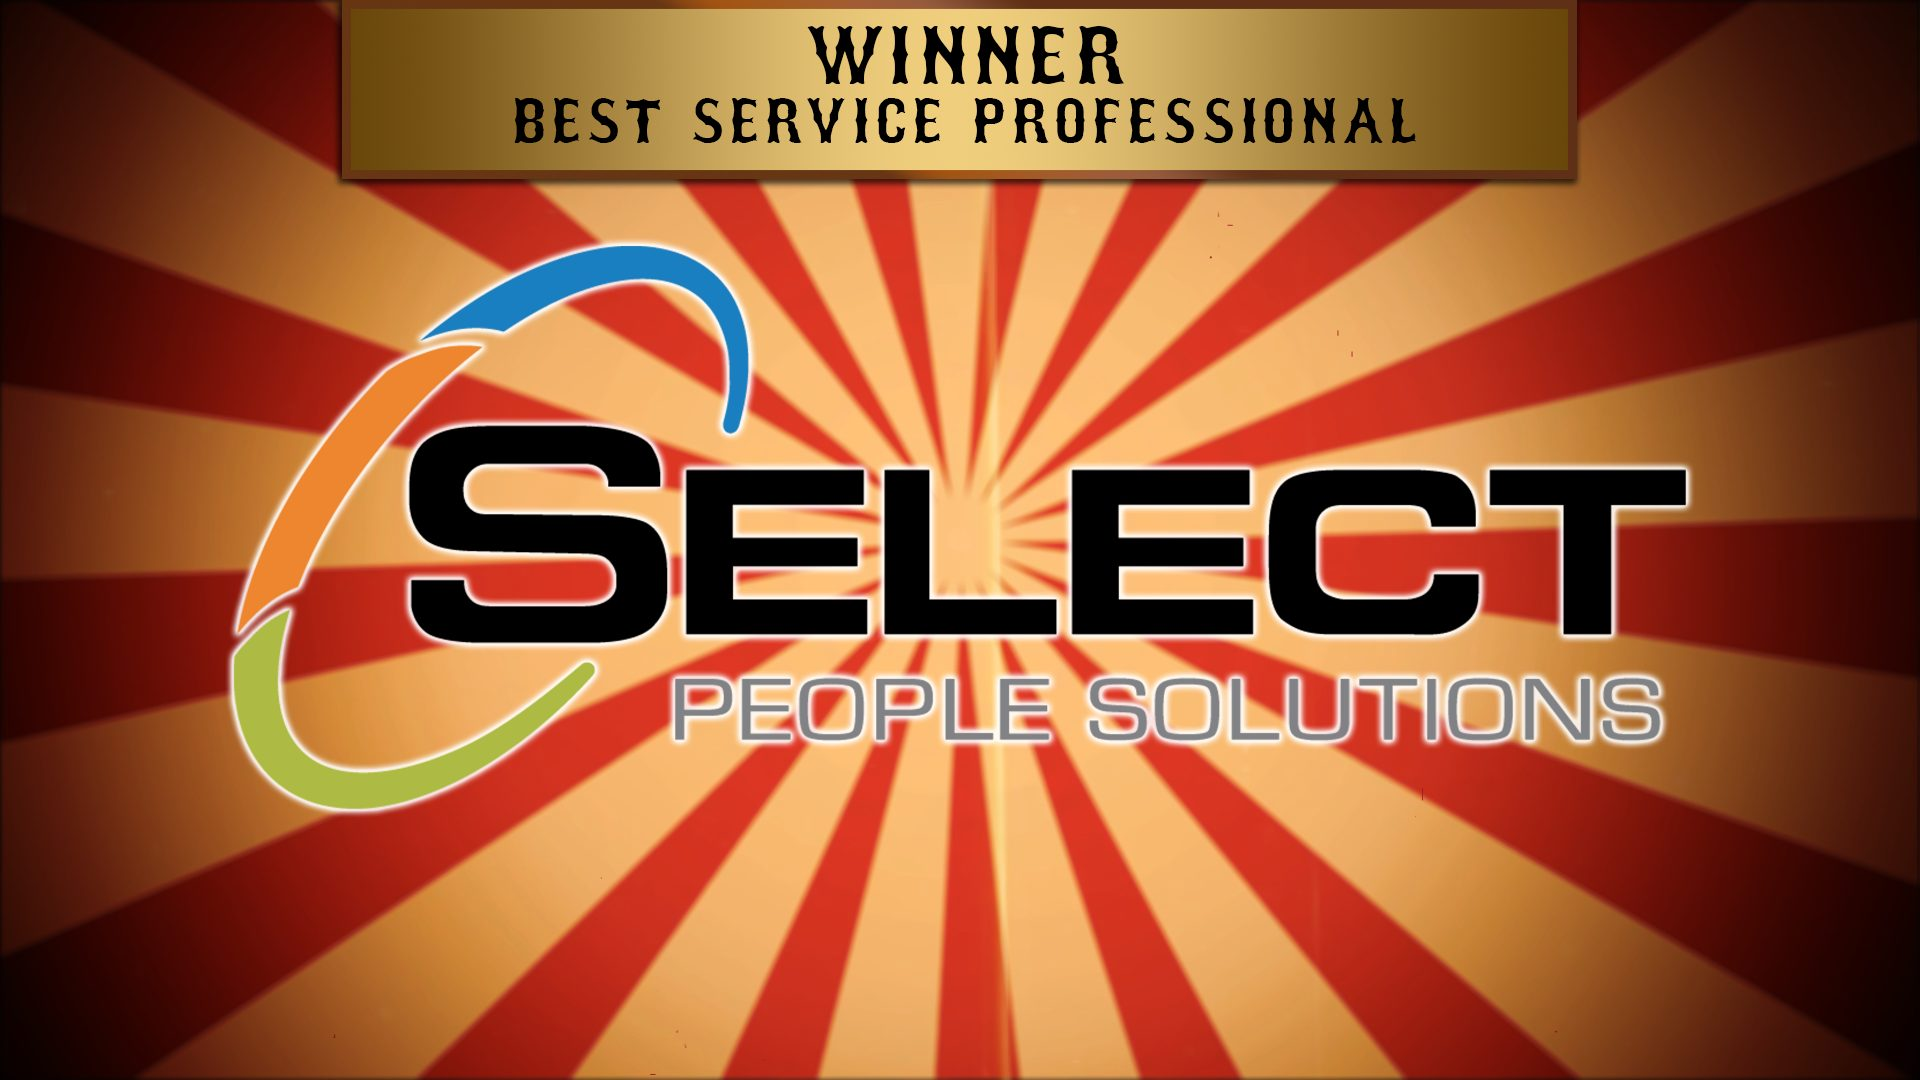 WIN_BestServiceProfessional